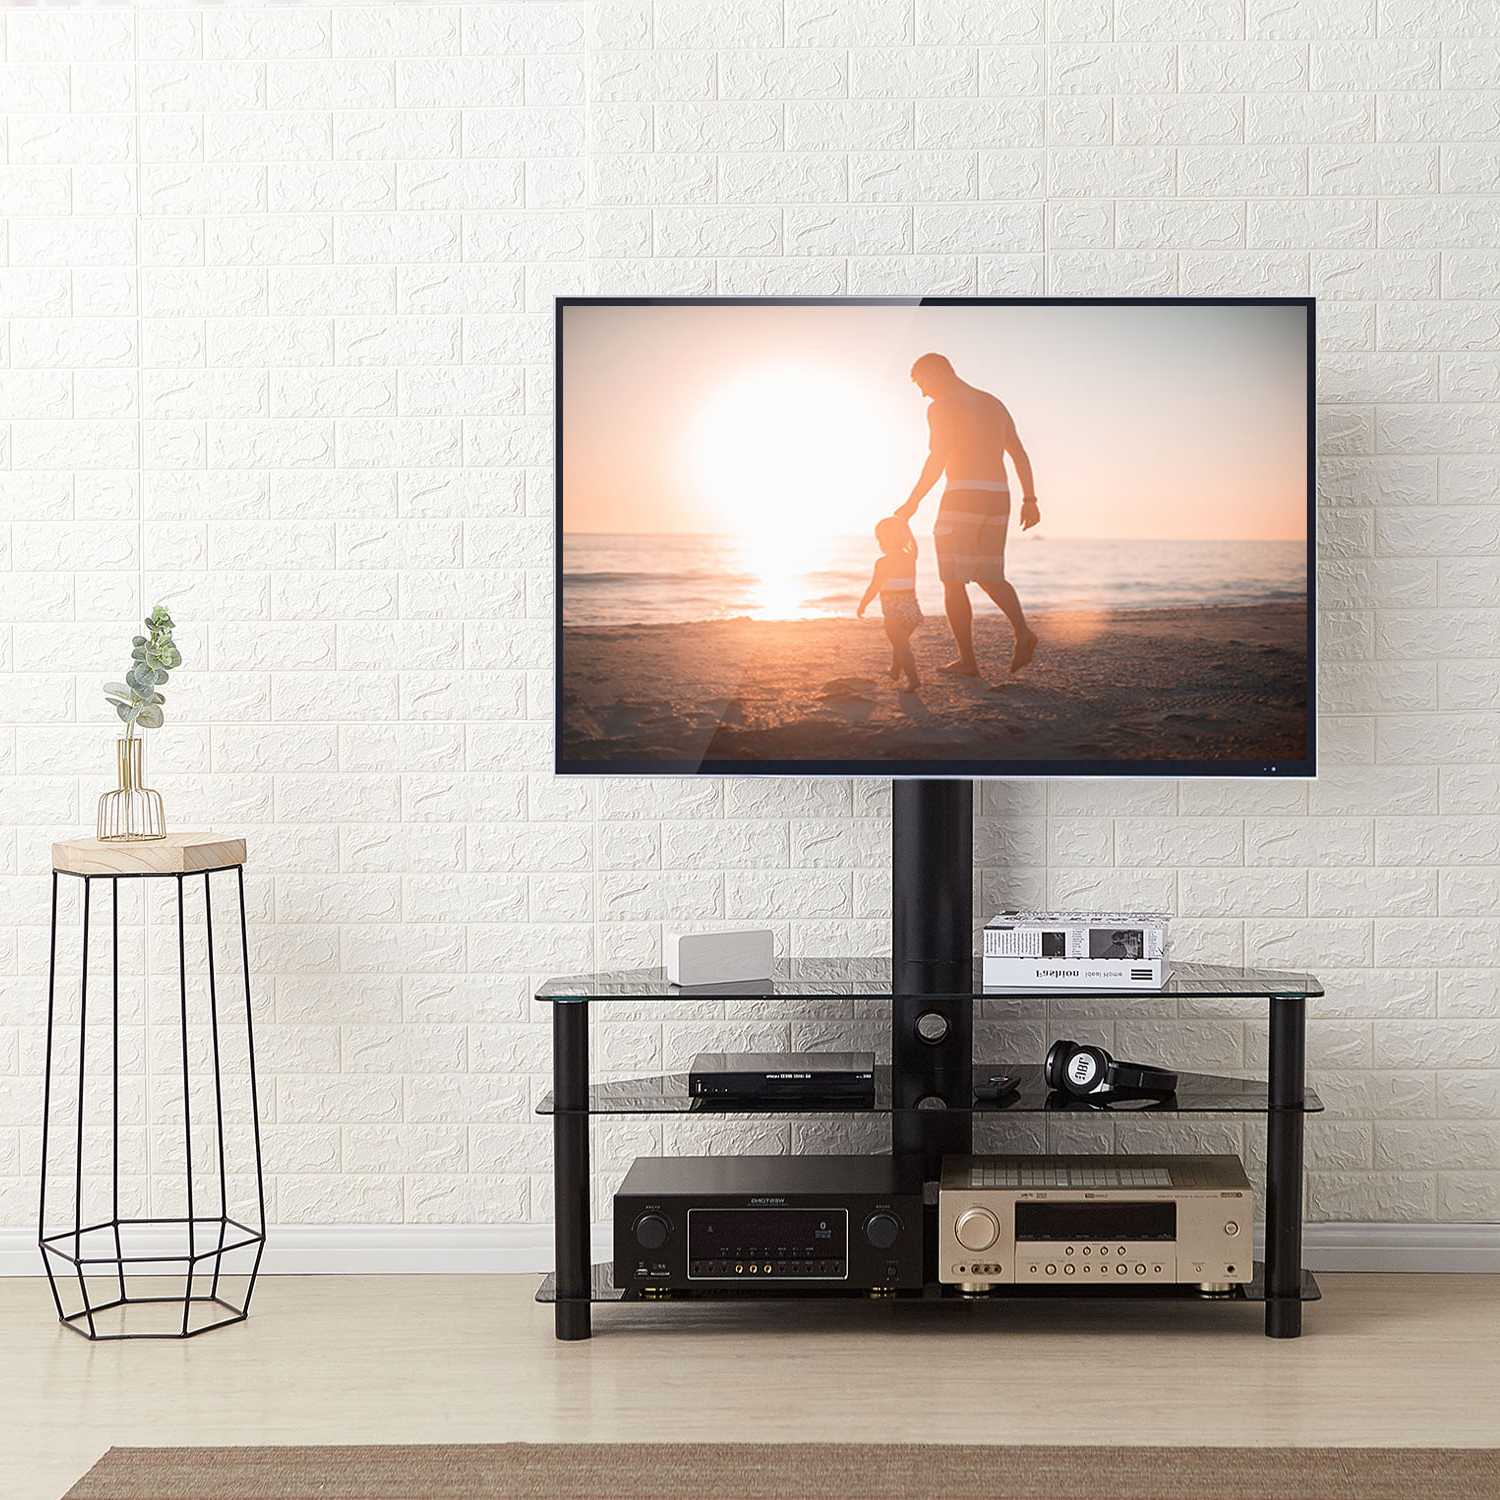 """Rfiver Corner Floor Tv Stand 37"""" 70"""" Tvs With Swivel Mount With Contemporary Black Tv Stands Corner Glass Shelf (View 6 of 20)"""